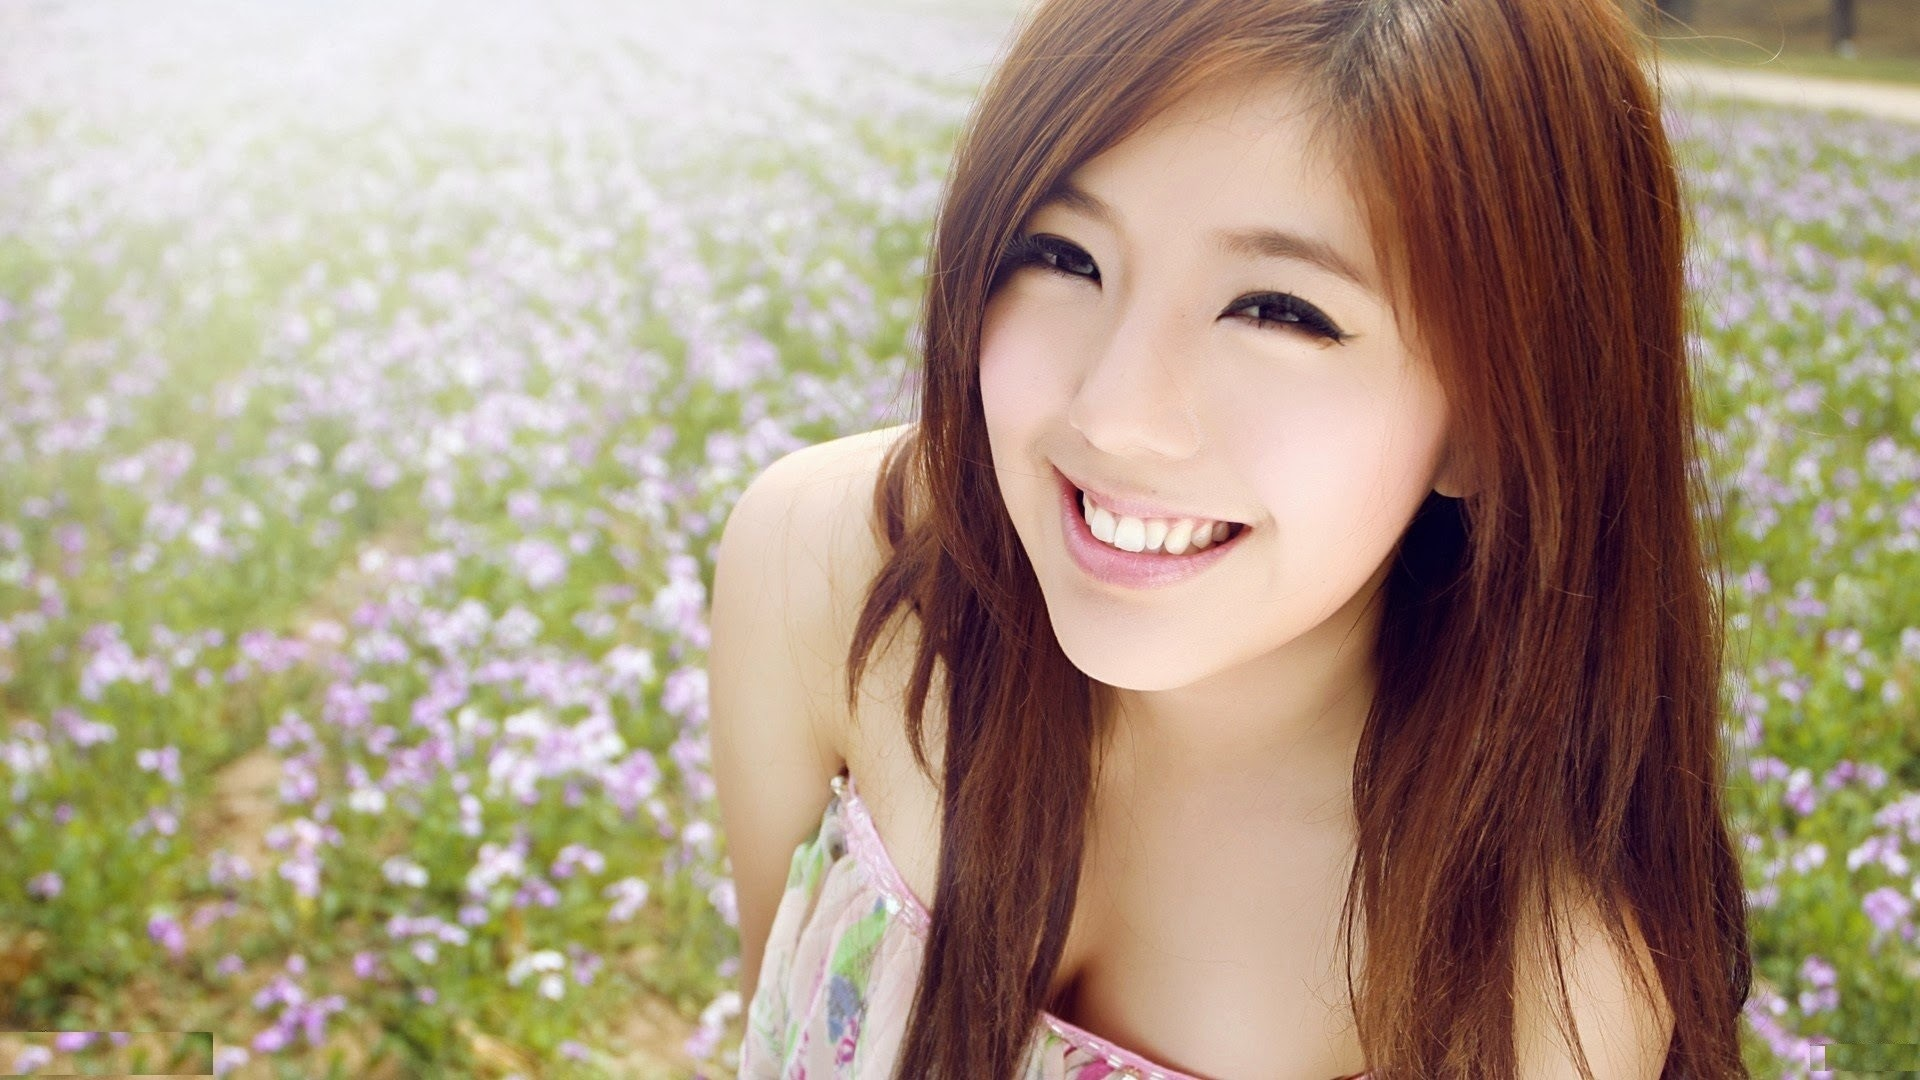 Beautiful asian girl cute smile eyes hd wallpaper 1920x1080 1920x1080